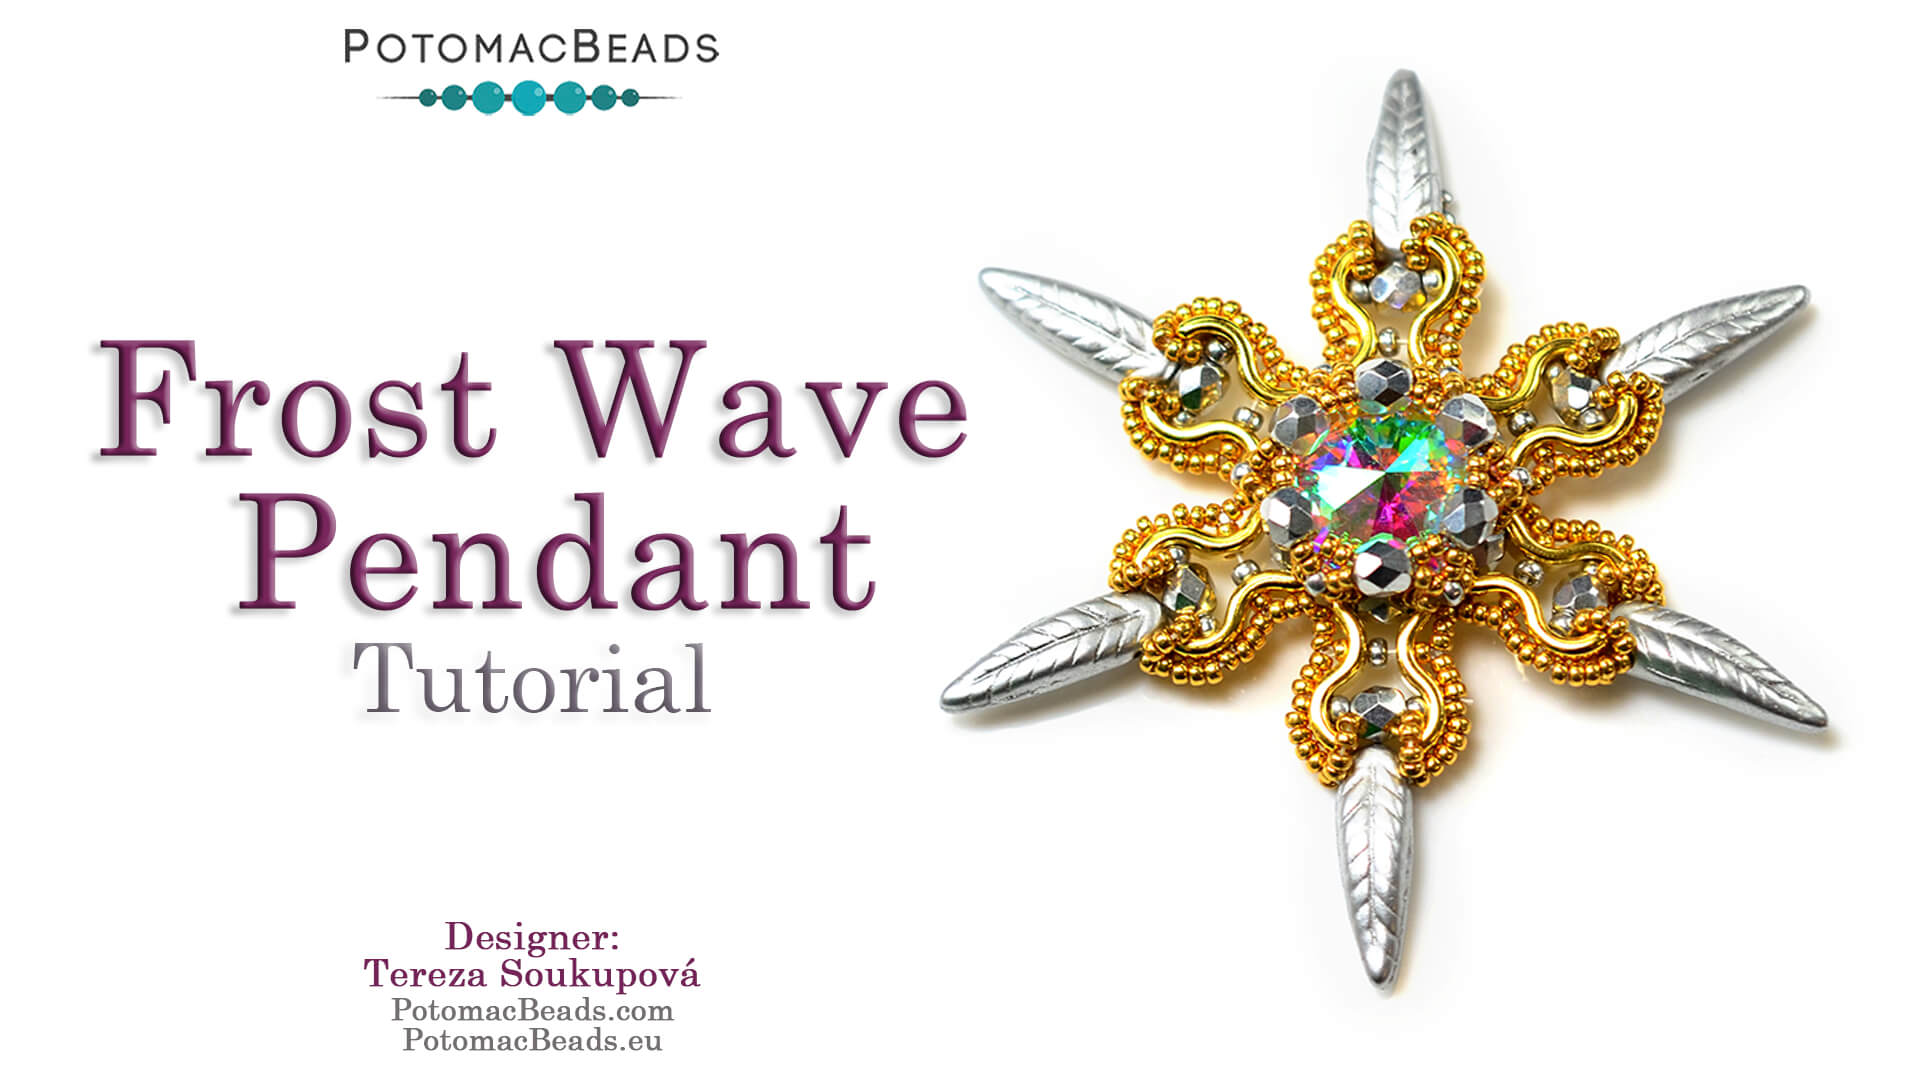 How to Bead / Videos Sorted by Beads / Potomax Metal Bead Videos / Frost Wave Pendant Tutorial